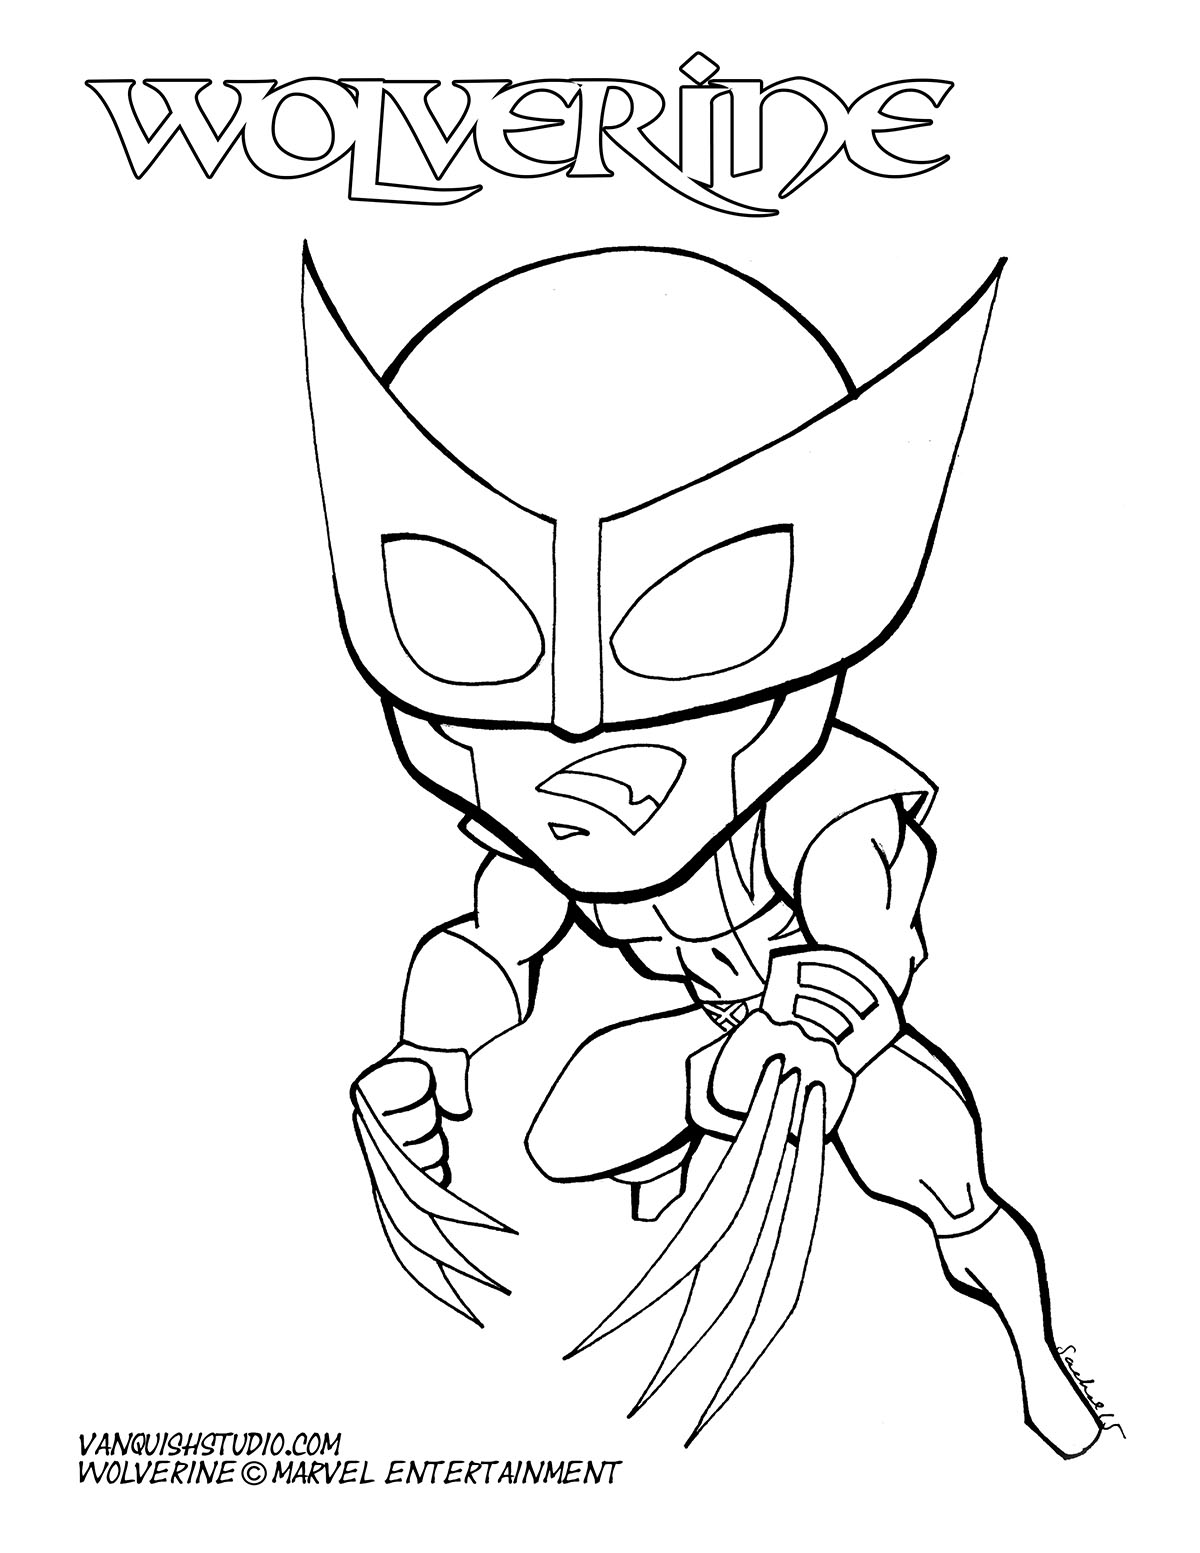 95 The Avengers And Wolverine Coloring Page